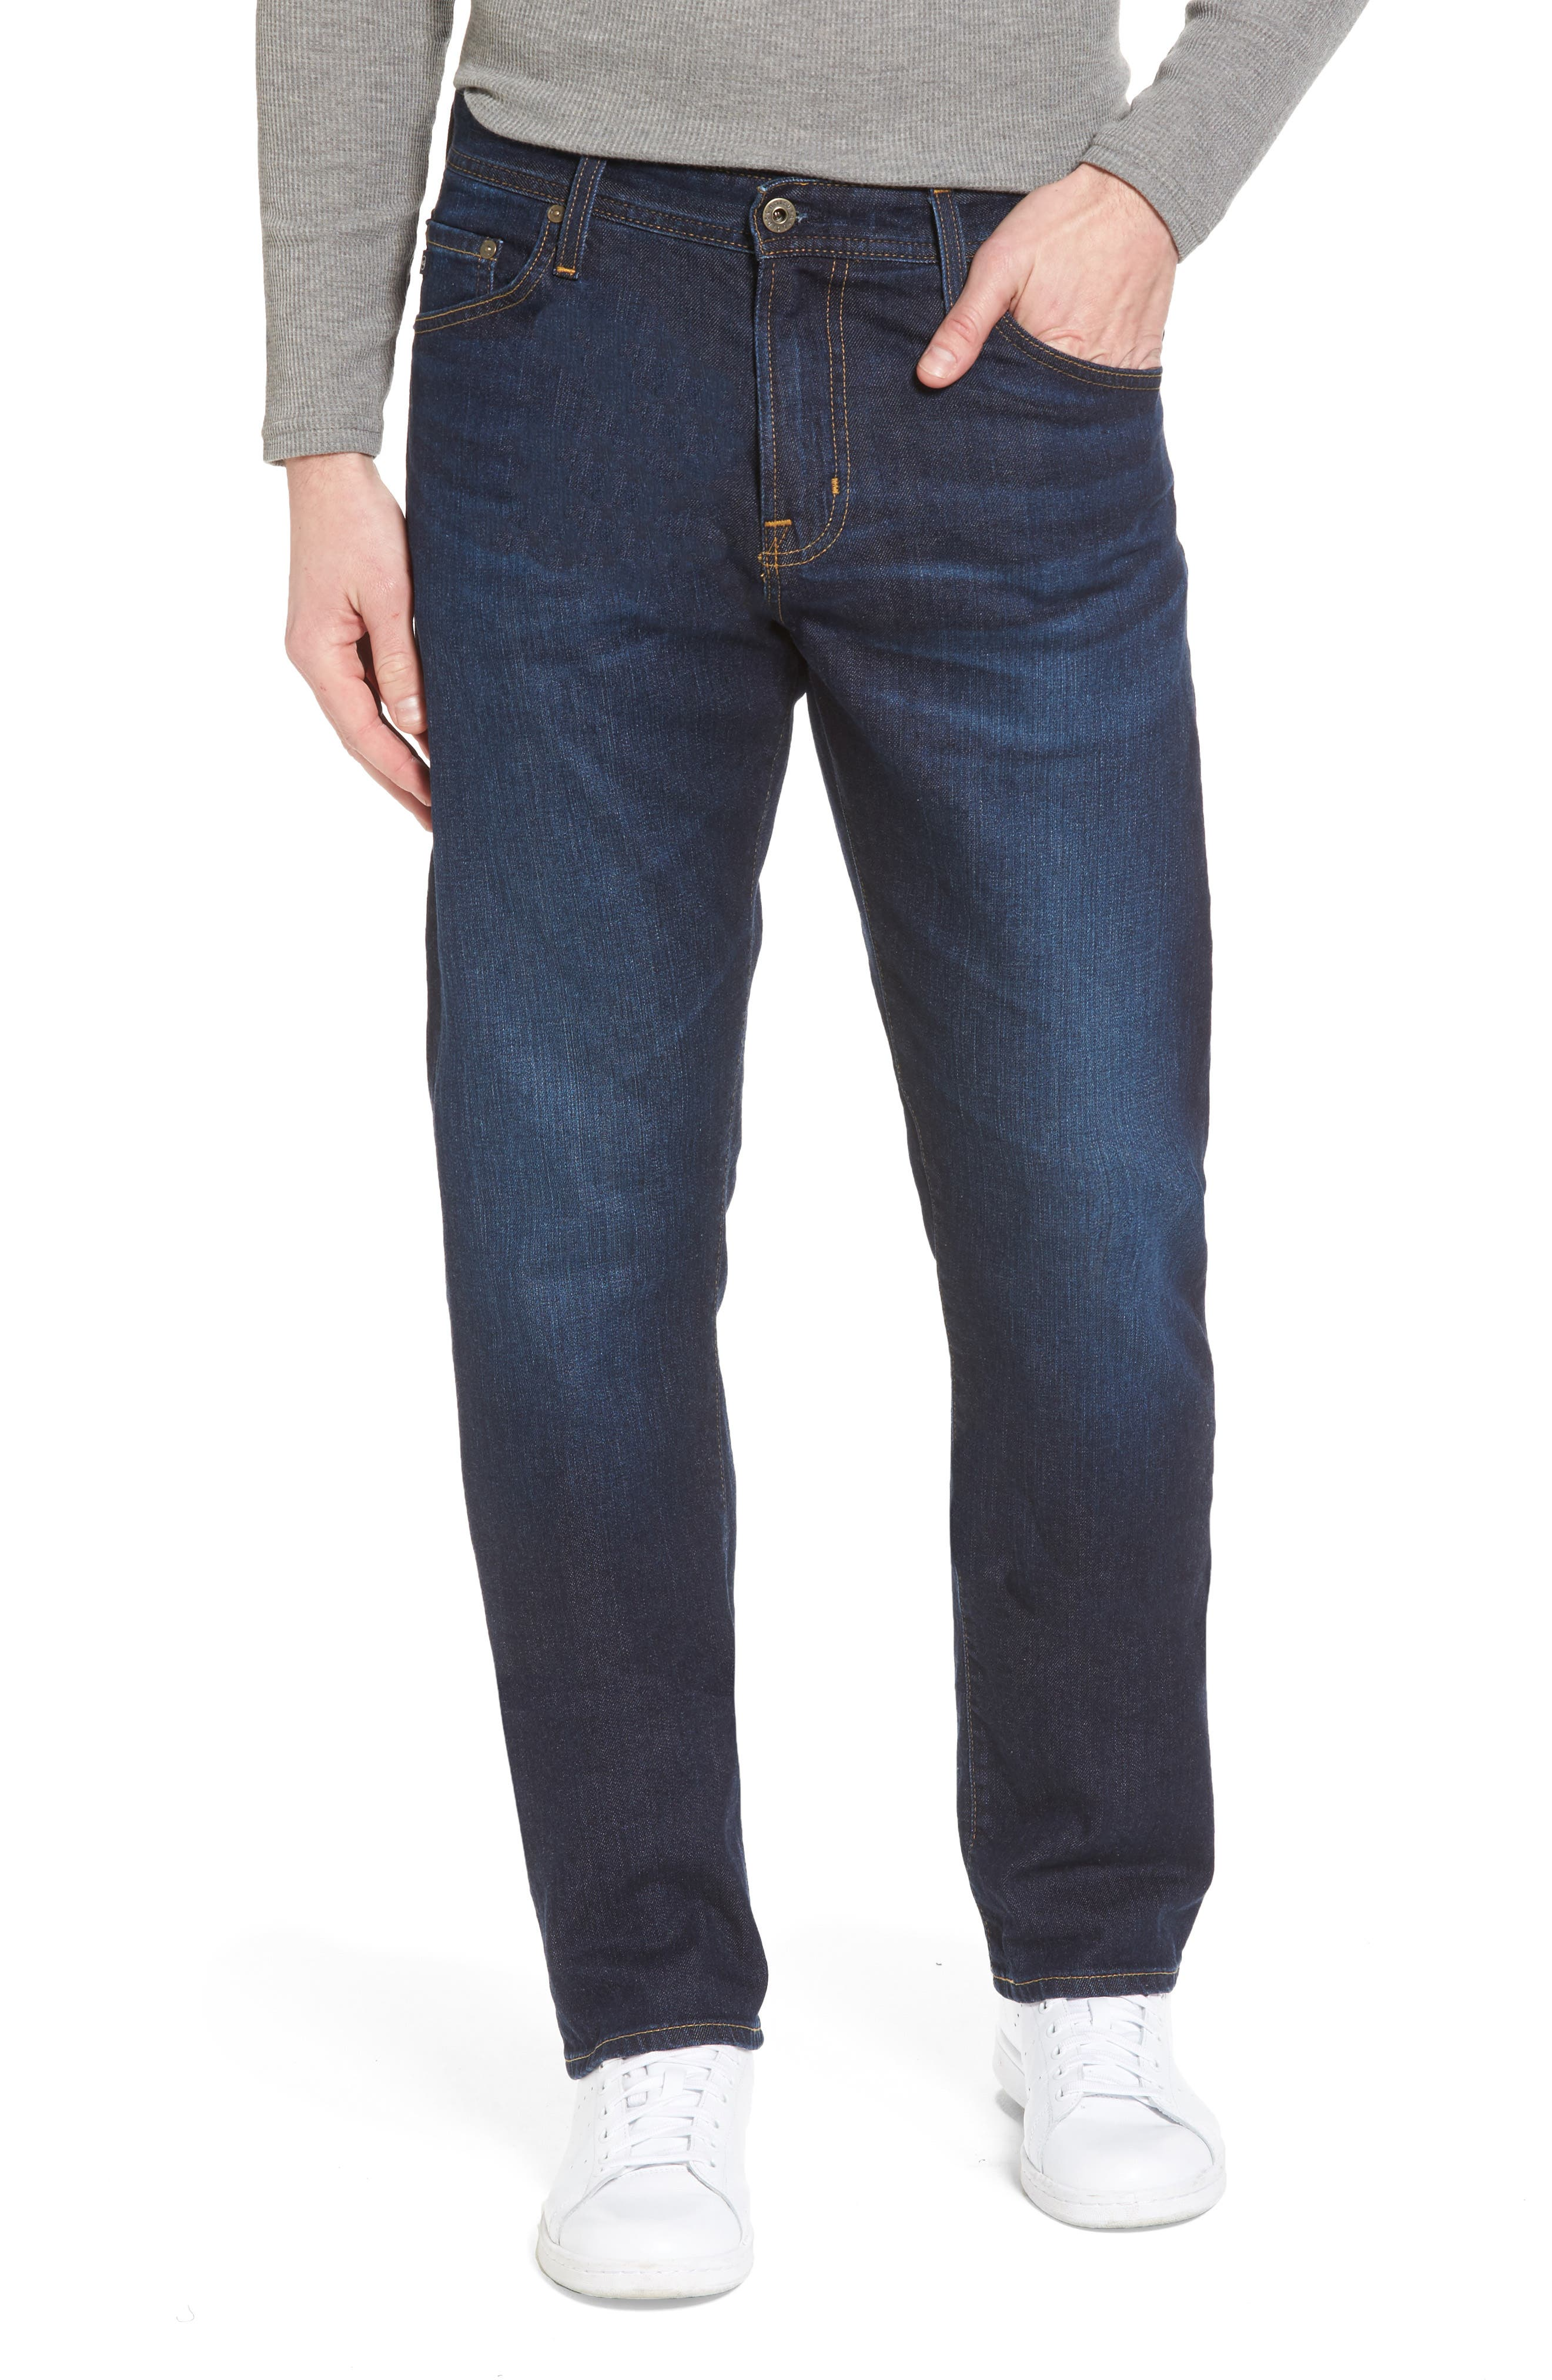 Alternate Image 1 Selected - AG Ives Straight Fit Jeans (Series)